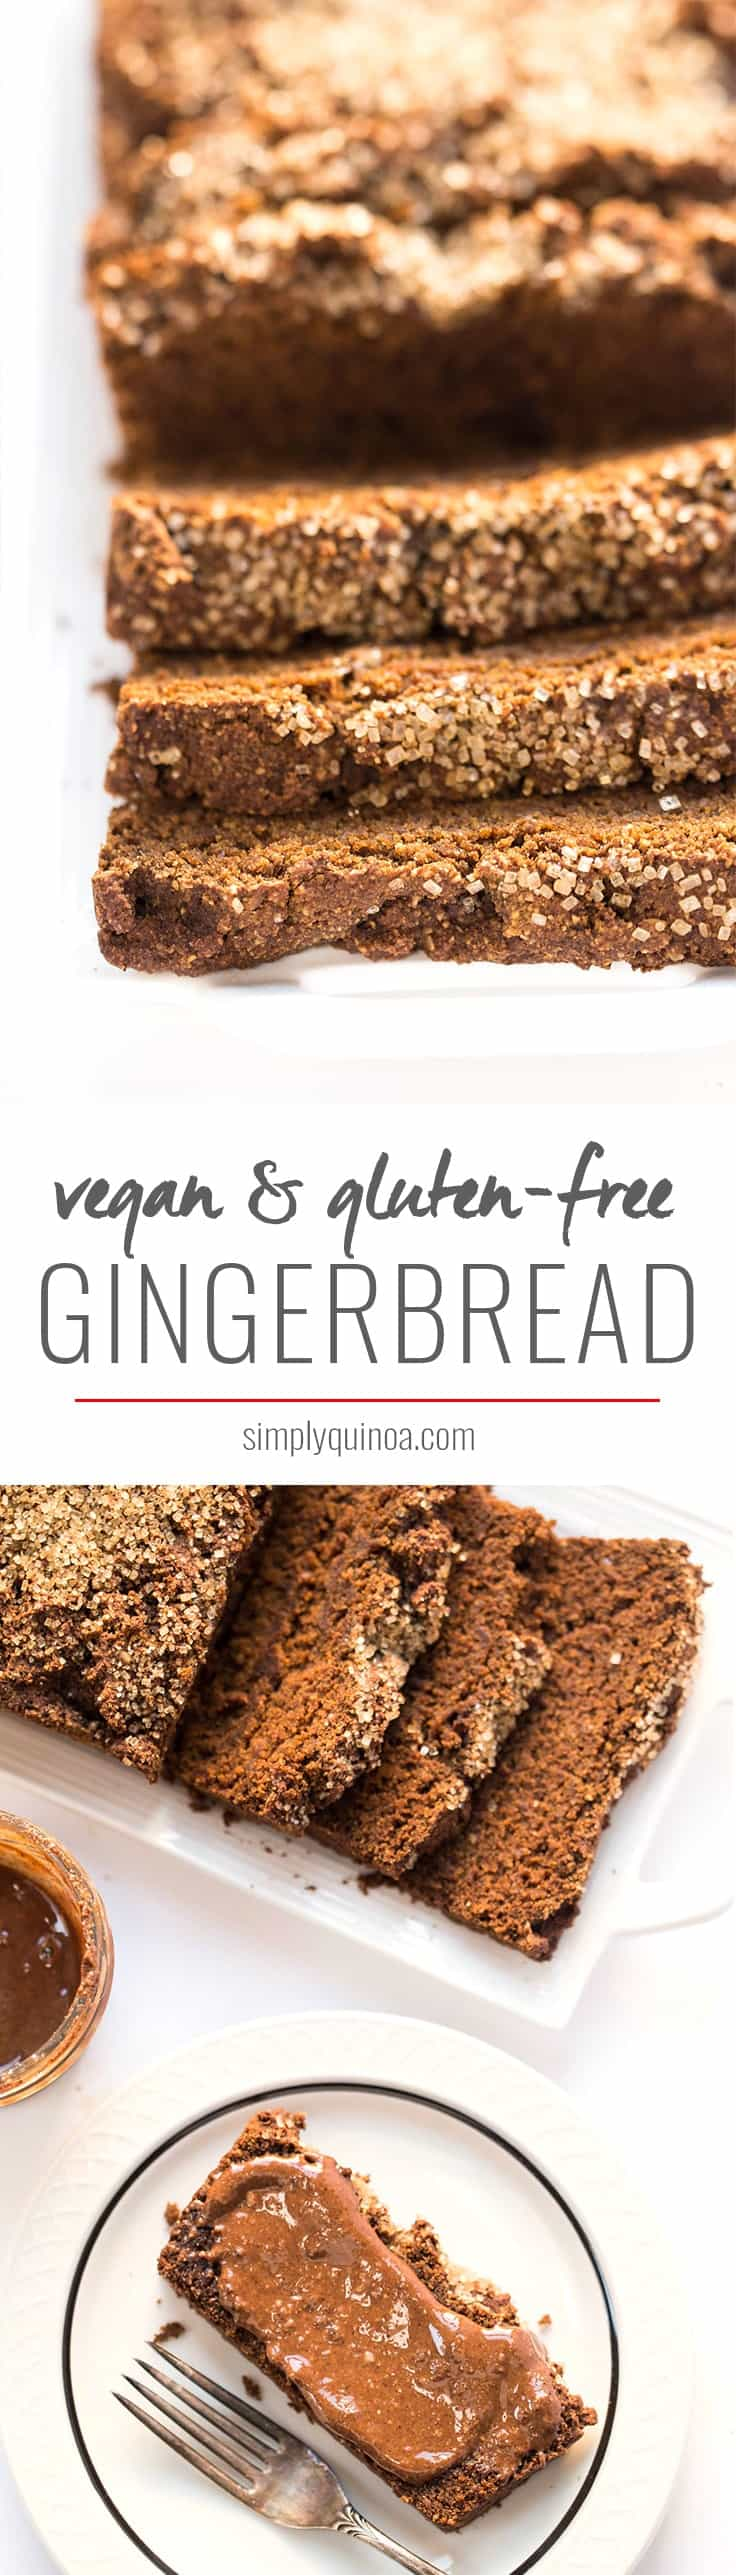 This Vegan Gingerbread Loaf is a nutritious version of this holiday treat, made without any dairy, eggs, gluten or oil. Perfect for breakfast or a snack!